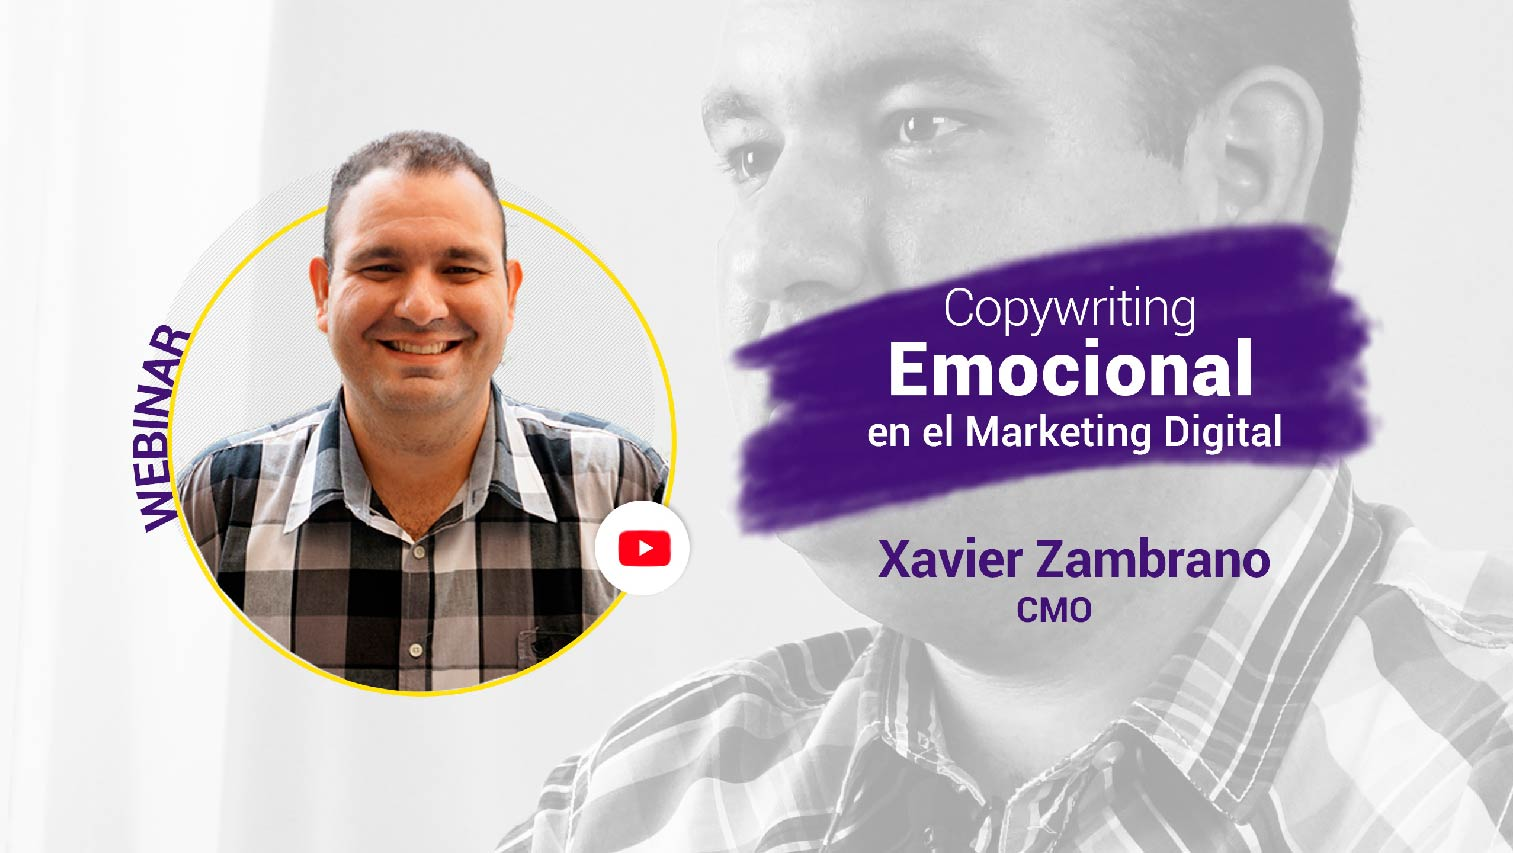 neuromarketing-copywritng-llega-a-la-mente-marketing-servicios-zuliatec-venezuela